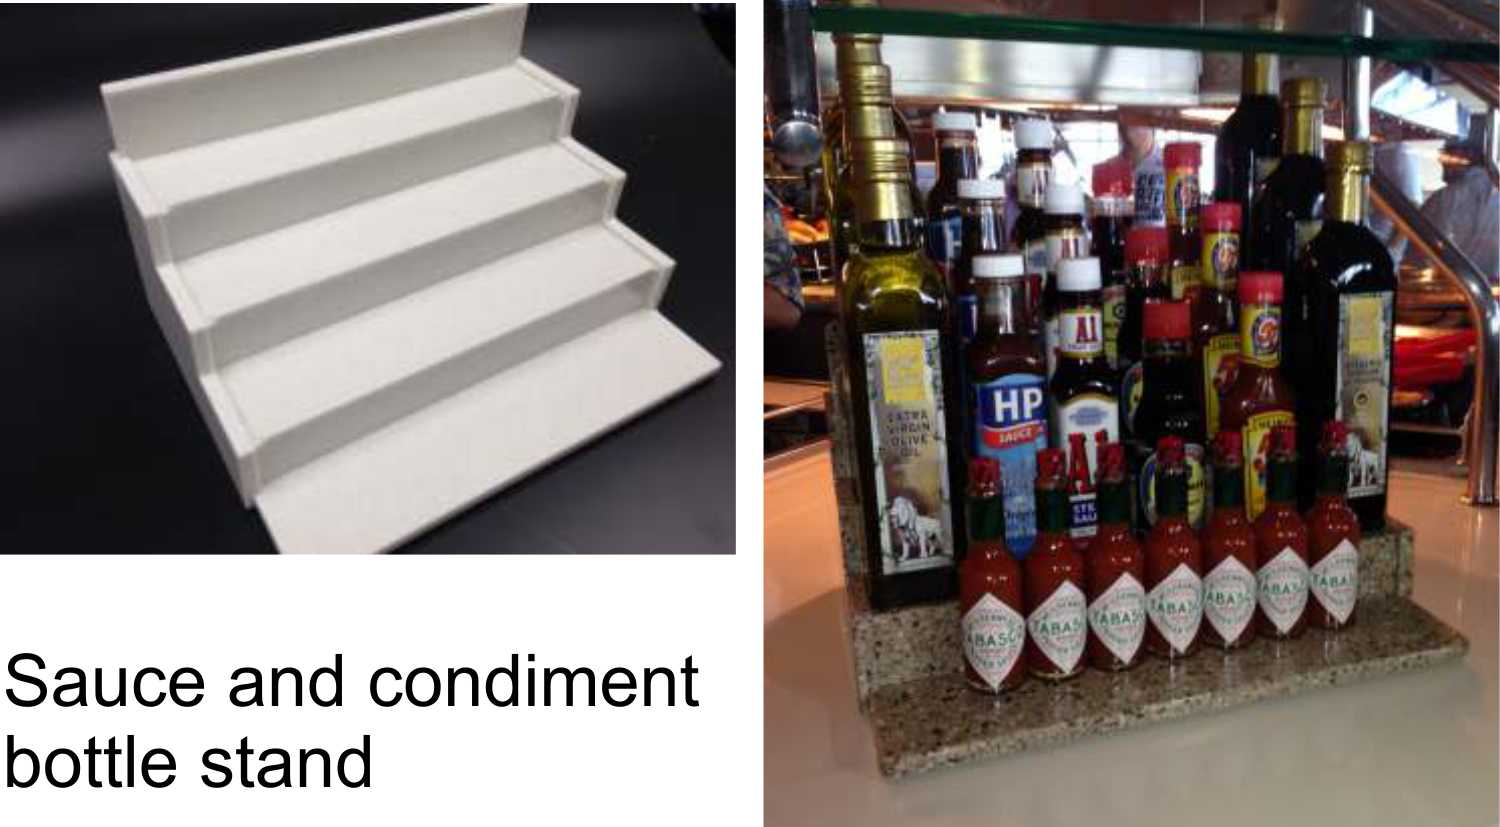 SAUCE BOTTLE STAND